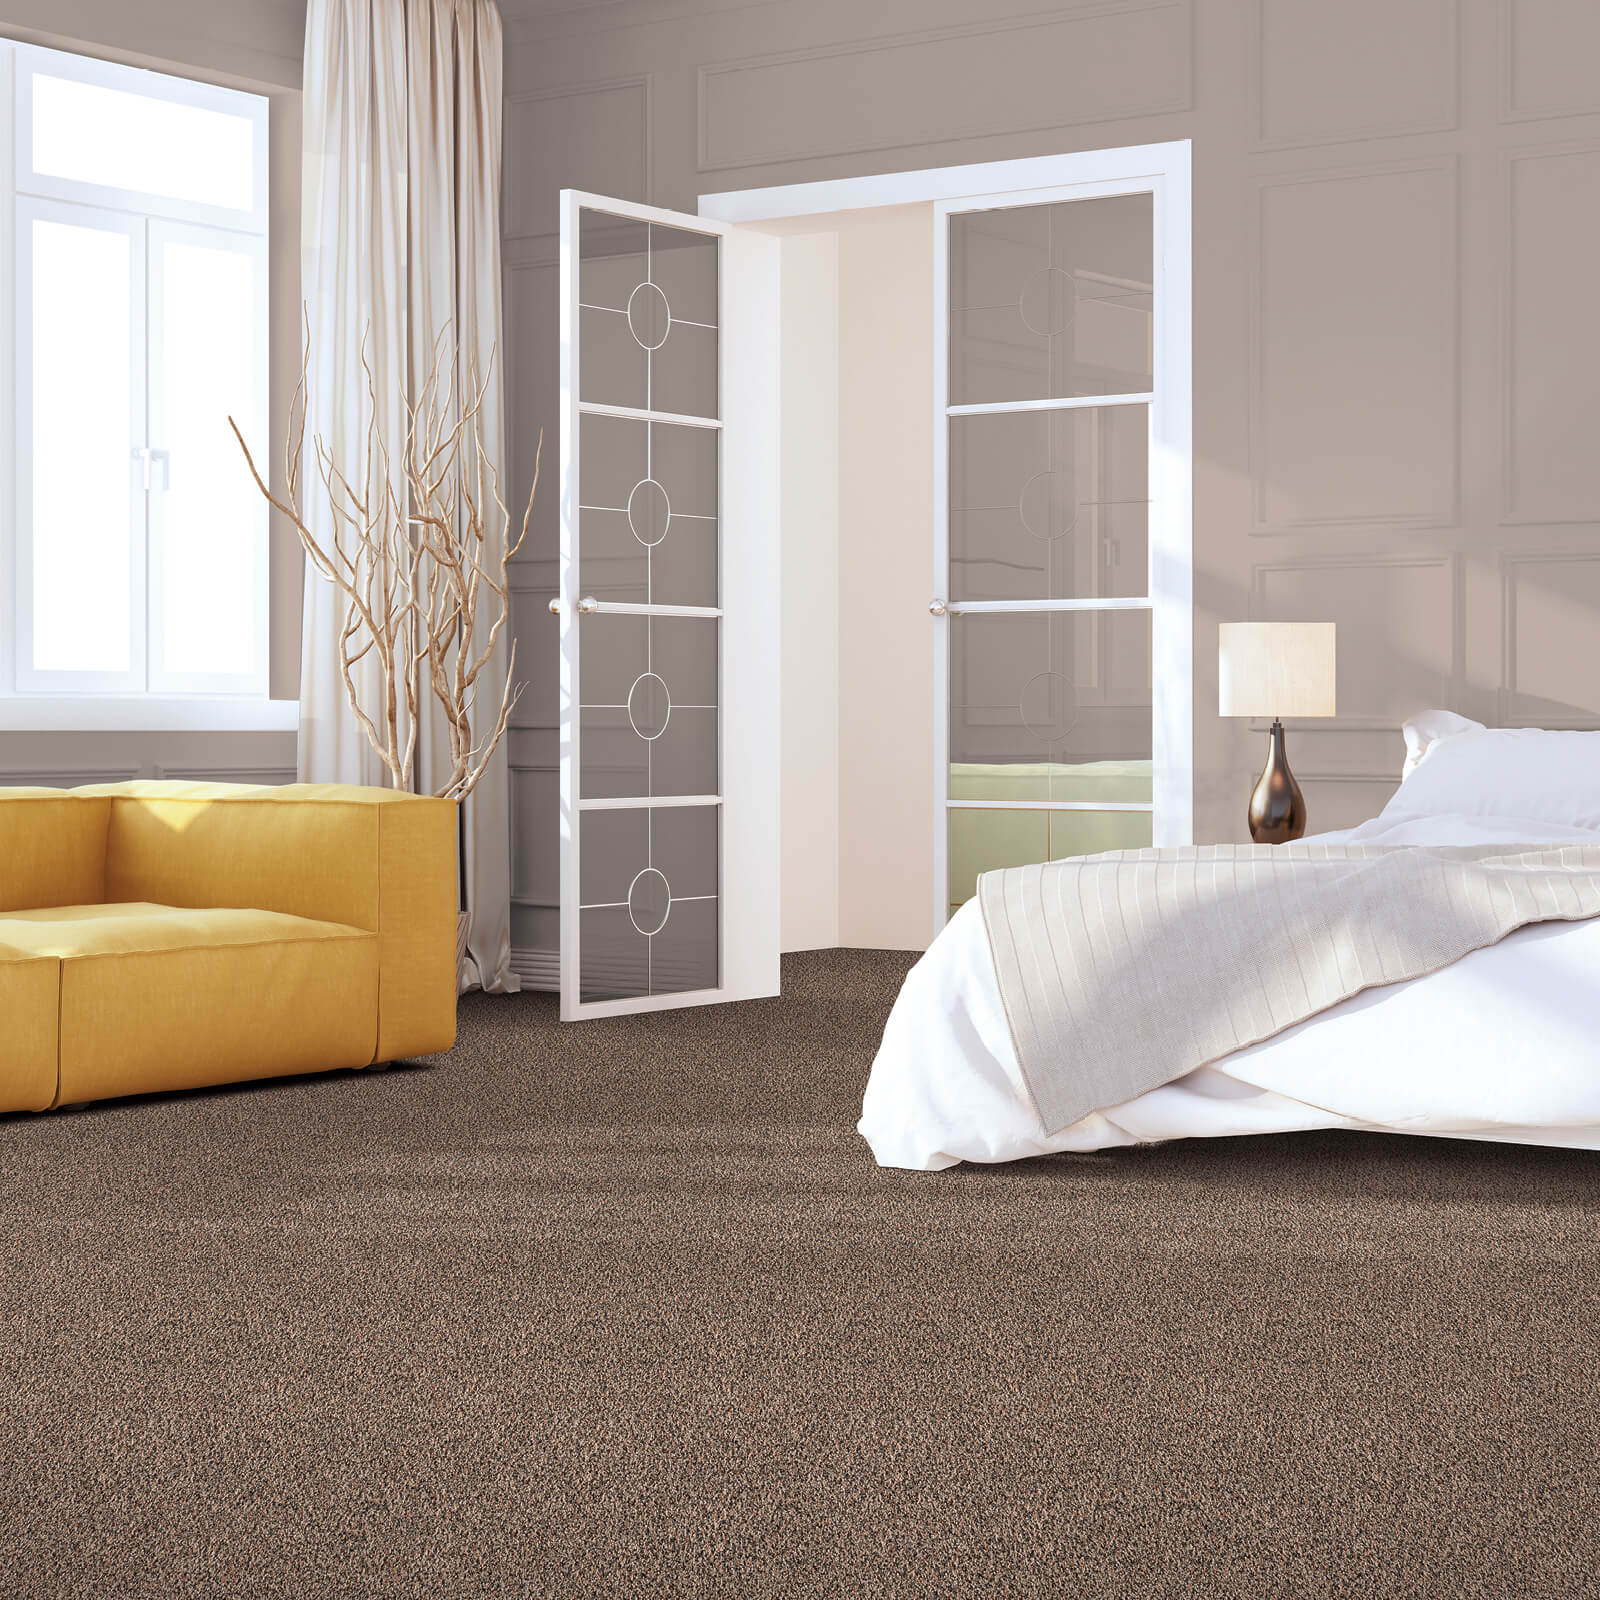 Bedroom Carpet | Georgia Flooring